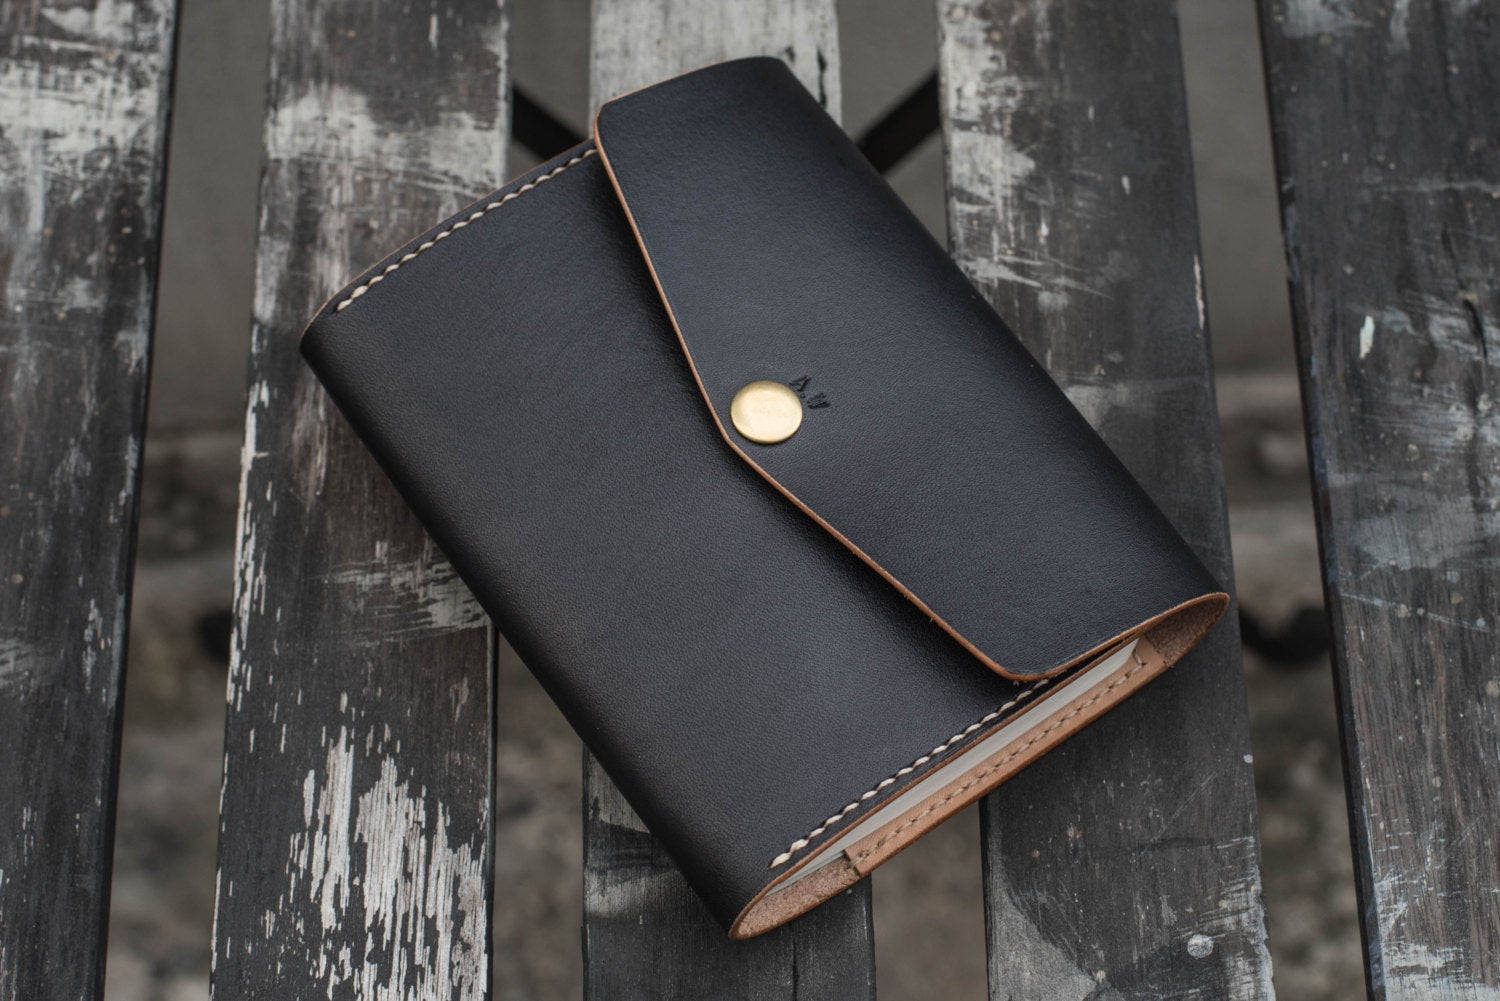 A6/Hobonichi/Midori MD Black Trifold Leather Notebook Cover